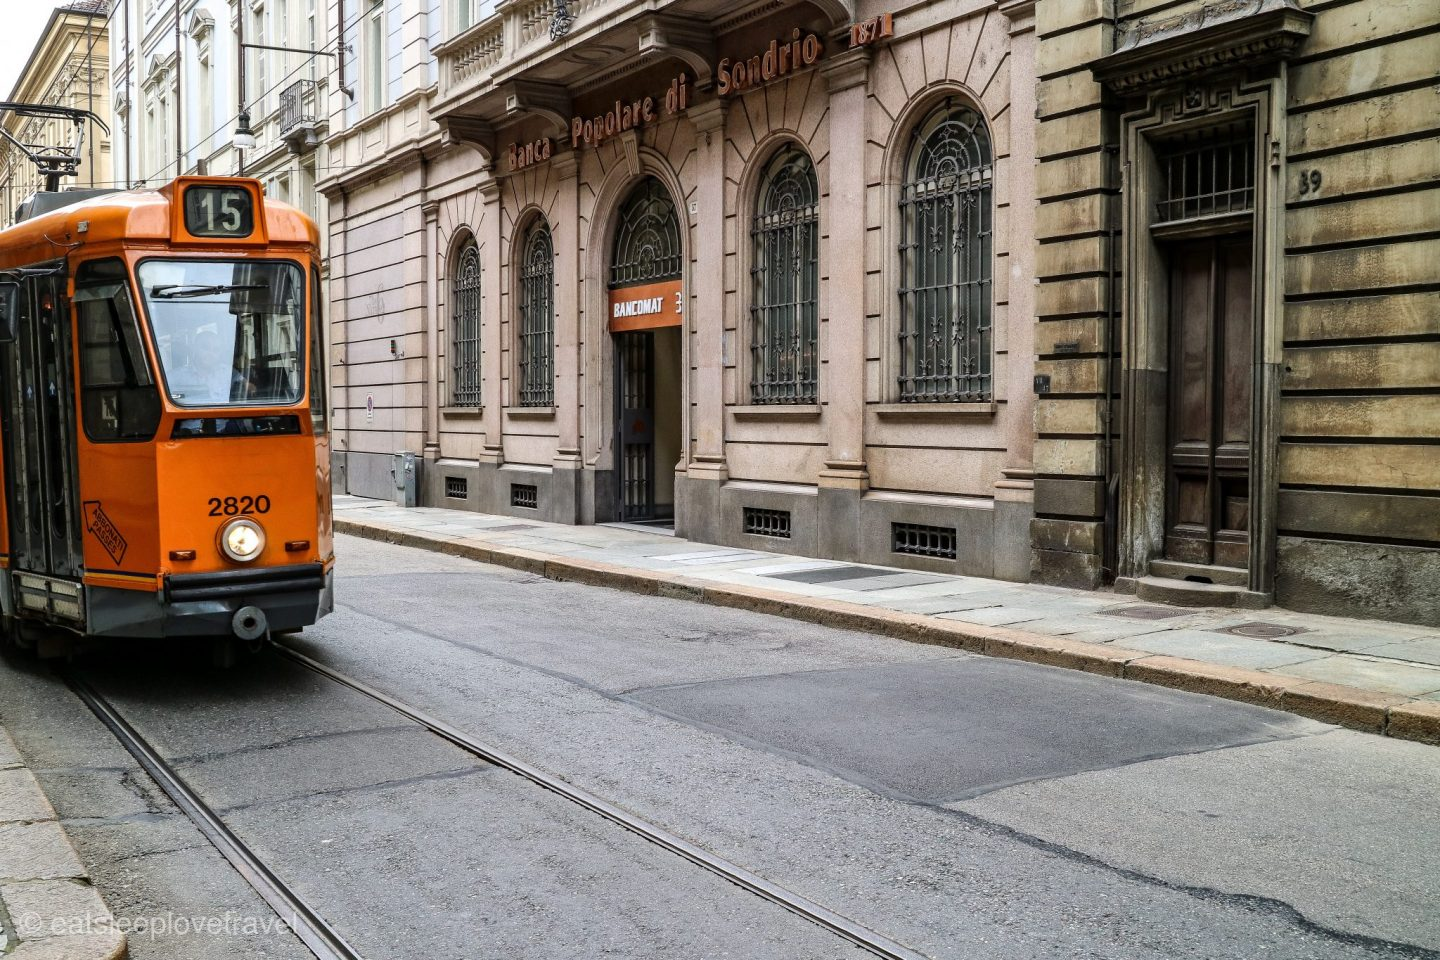 Tram in Turin, Italy